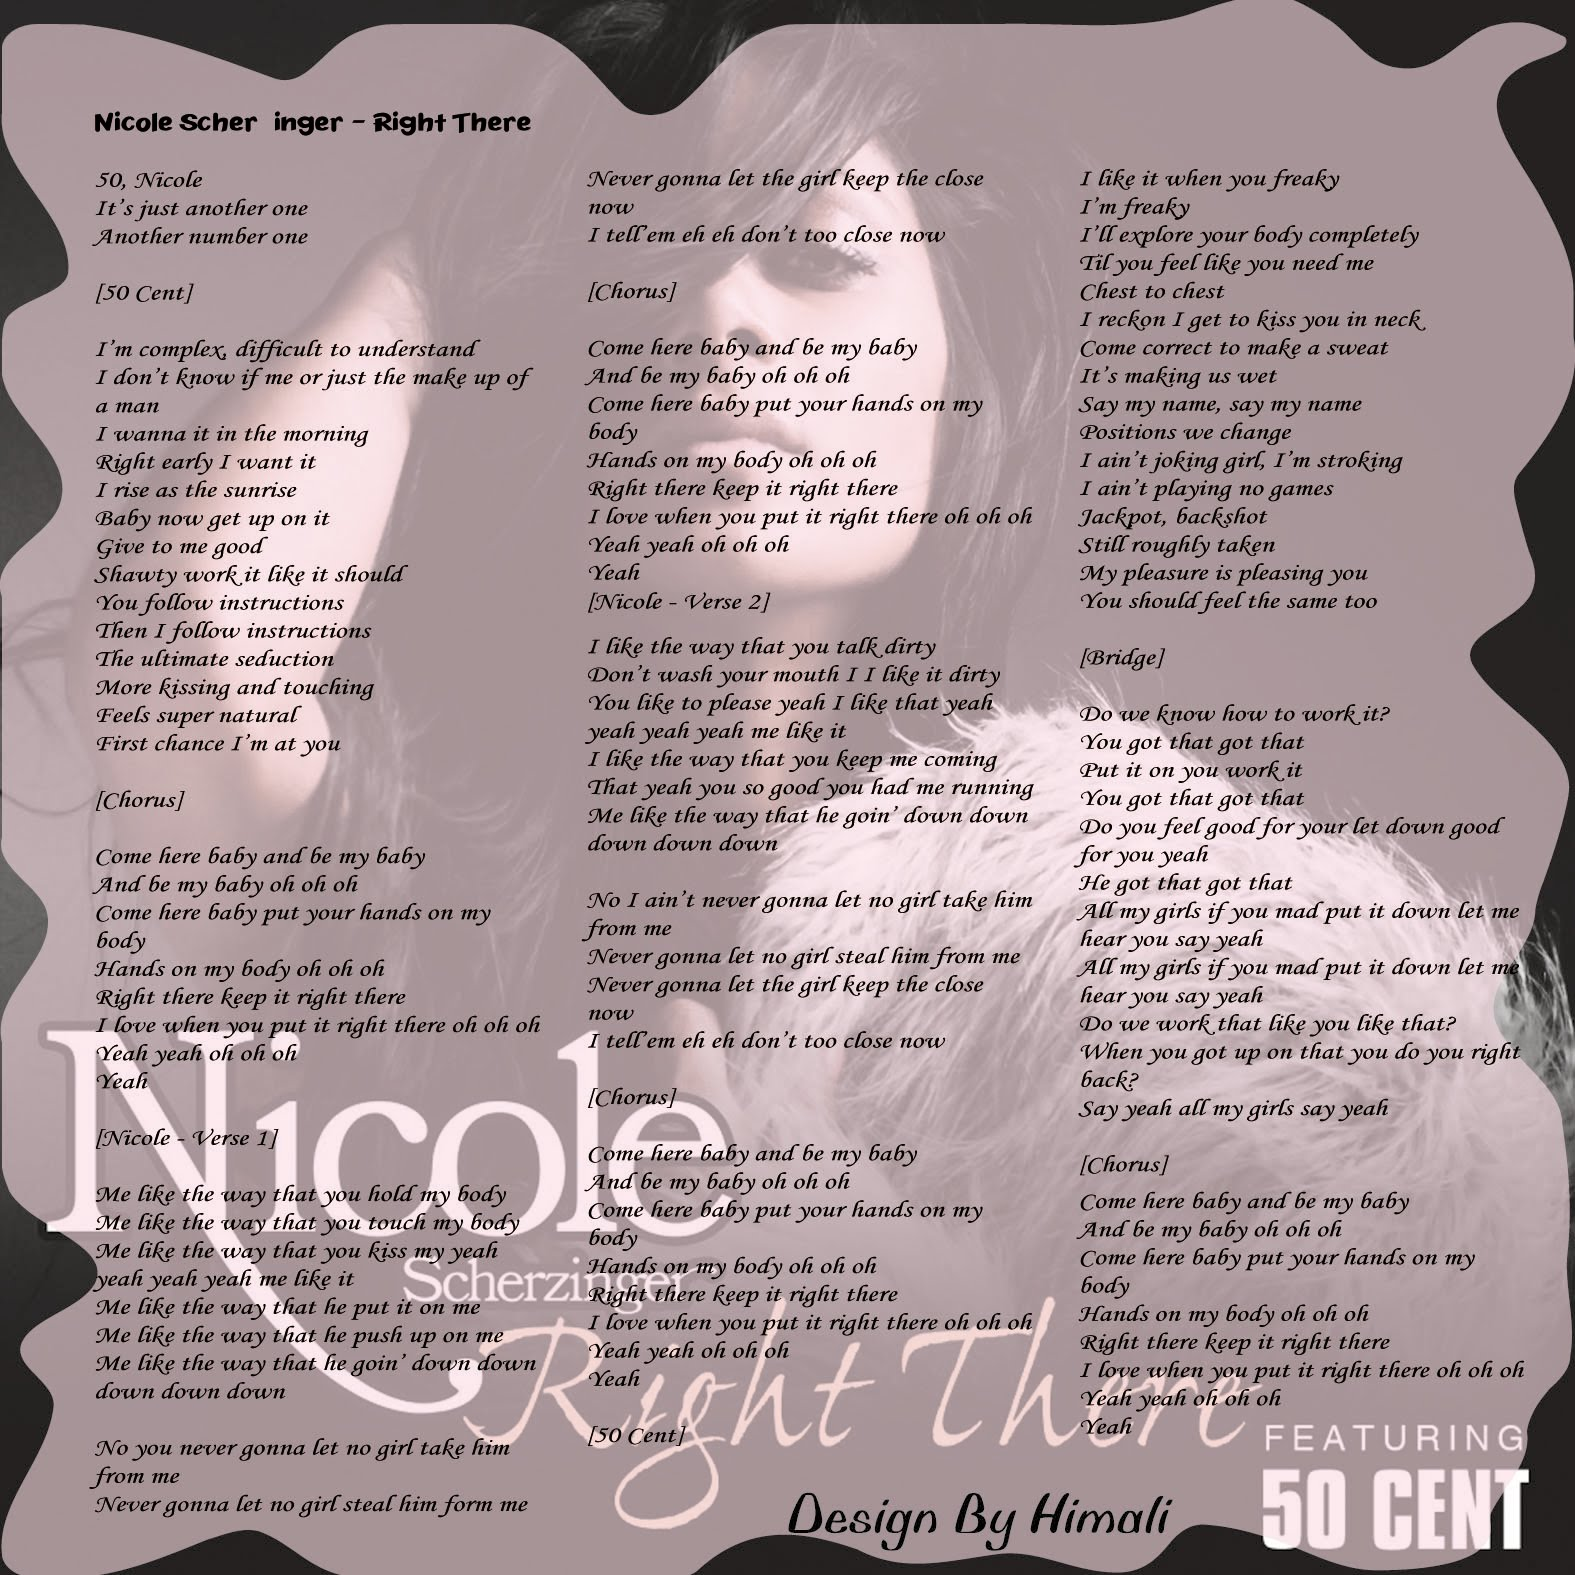 will be there lyrics: